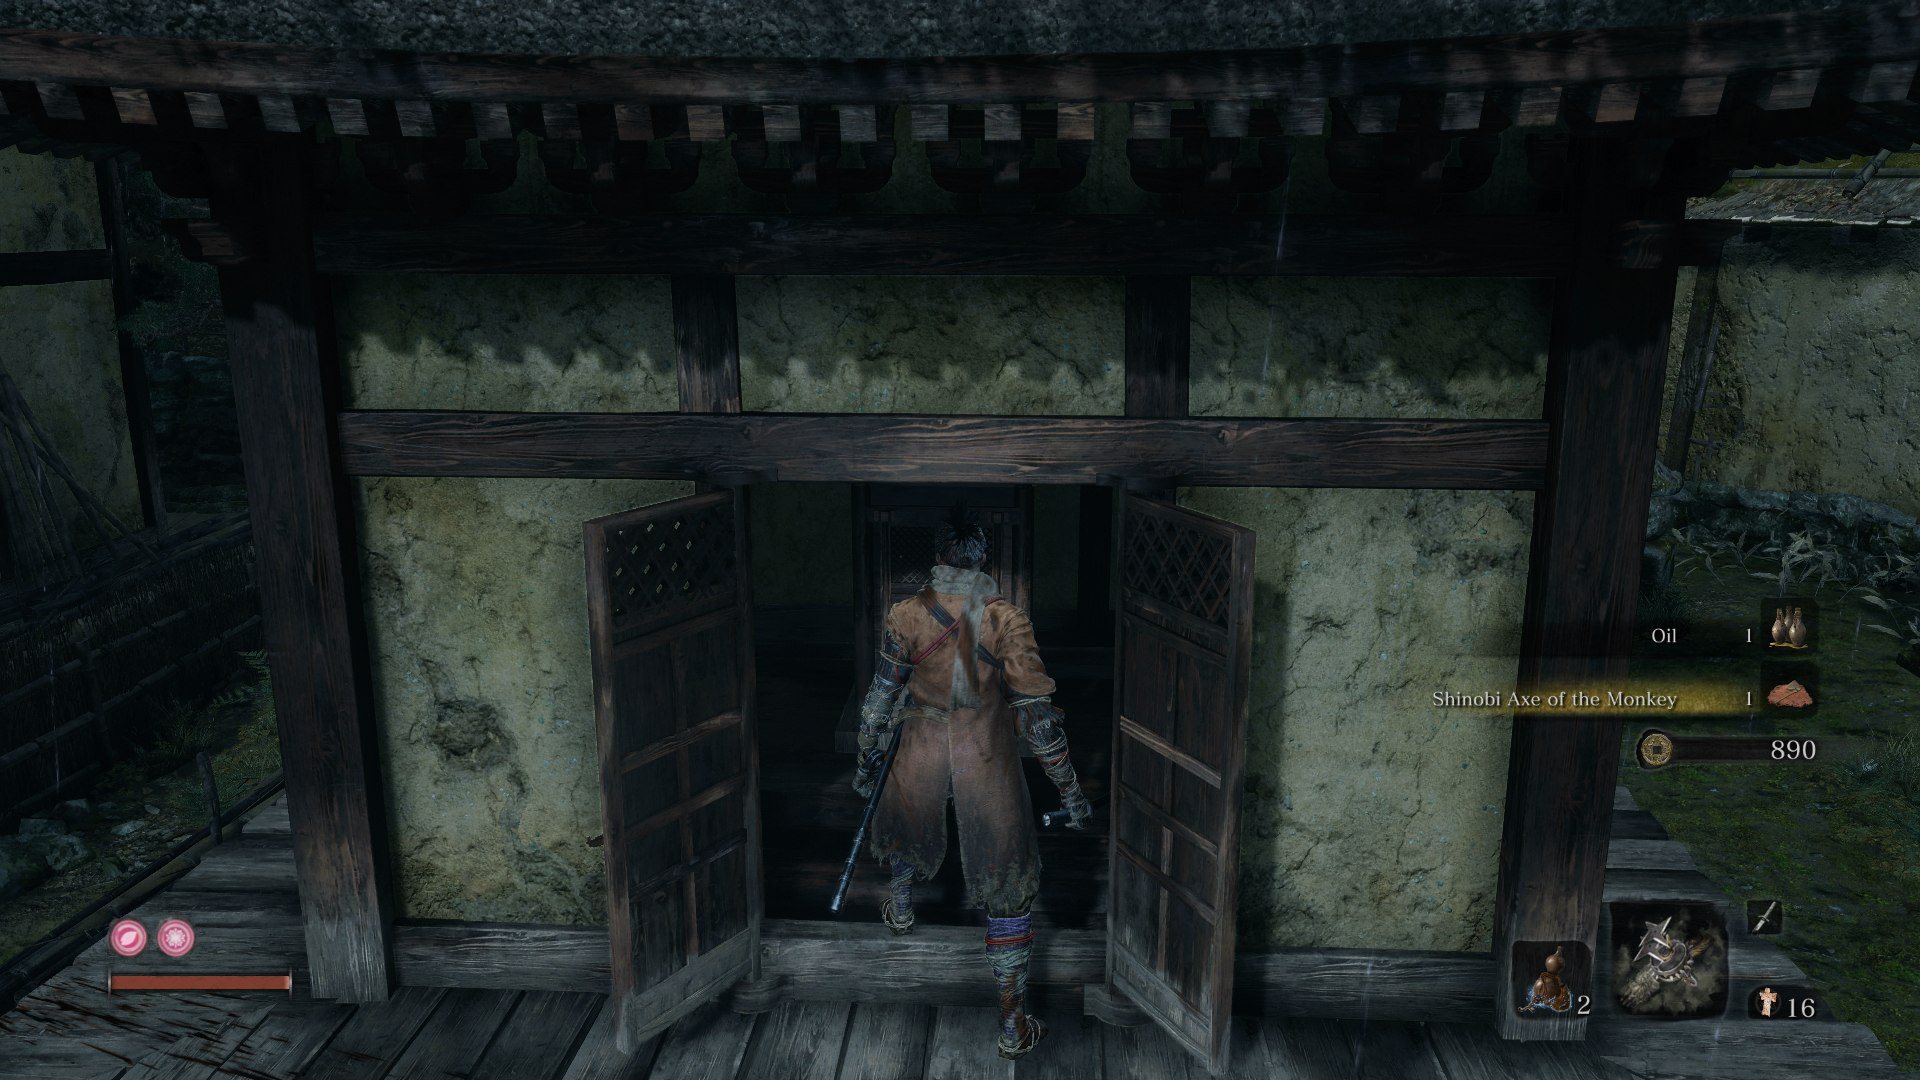 How to Unlock New Prosthetic Tools in Sekiro: Shadows Die Twice